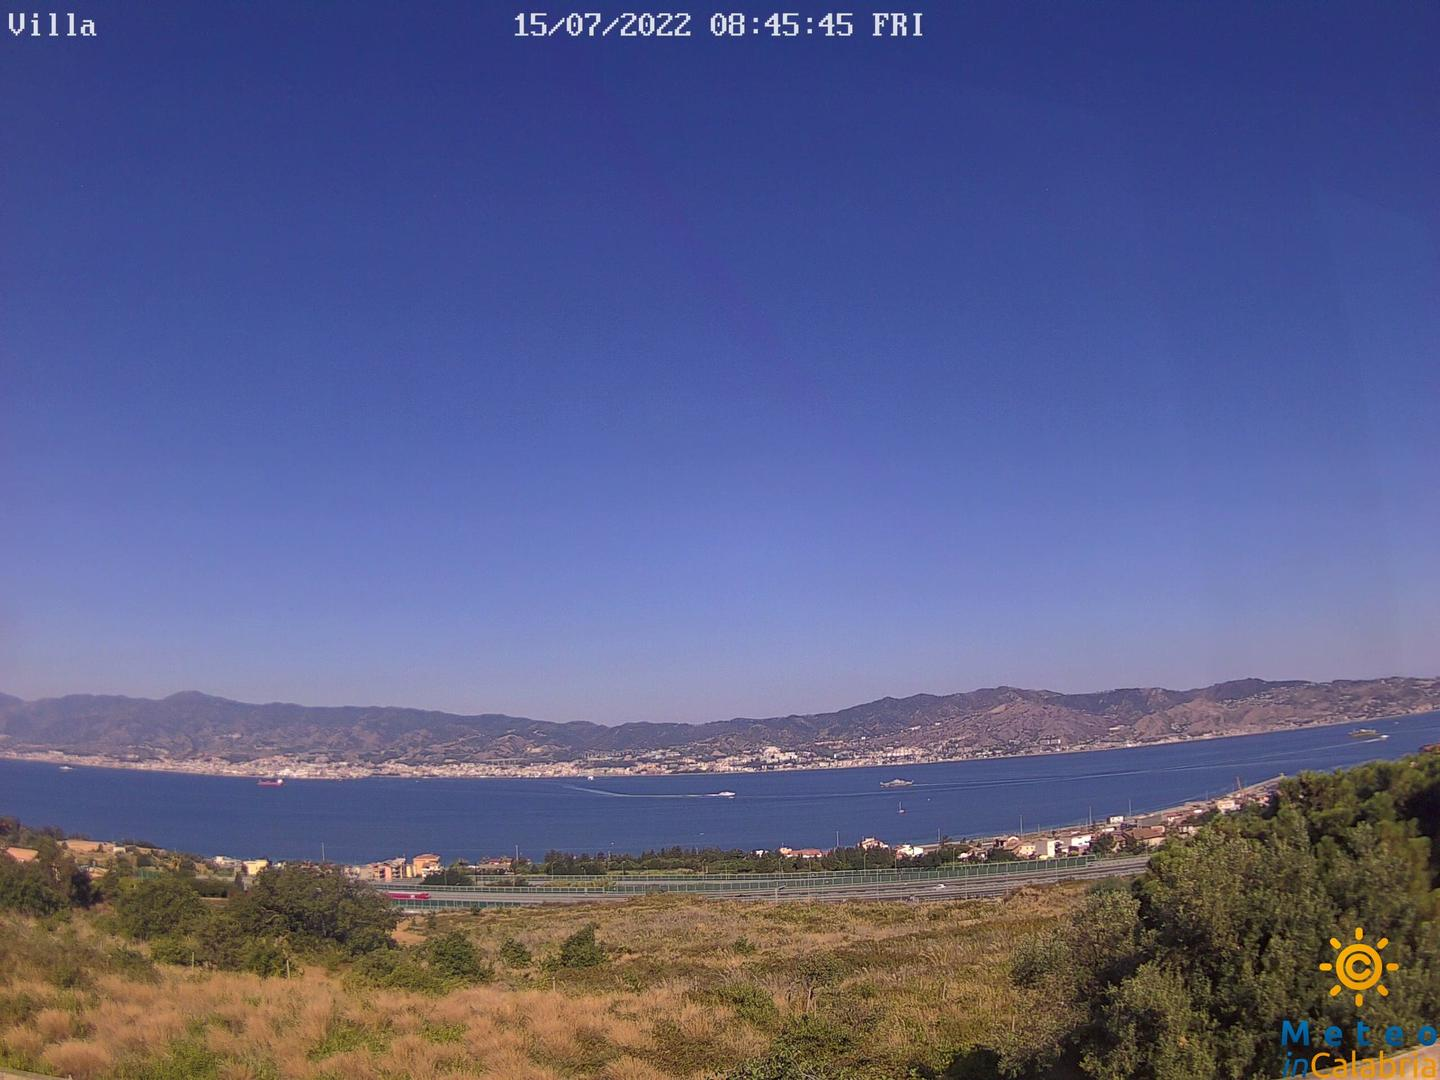 Webcam di Villa San Giovanni